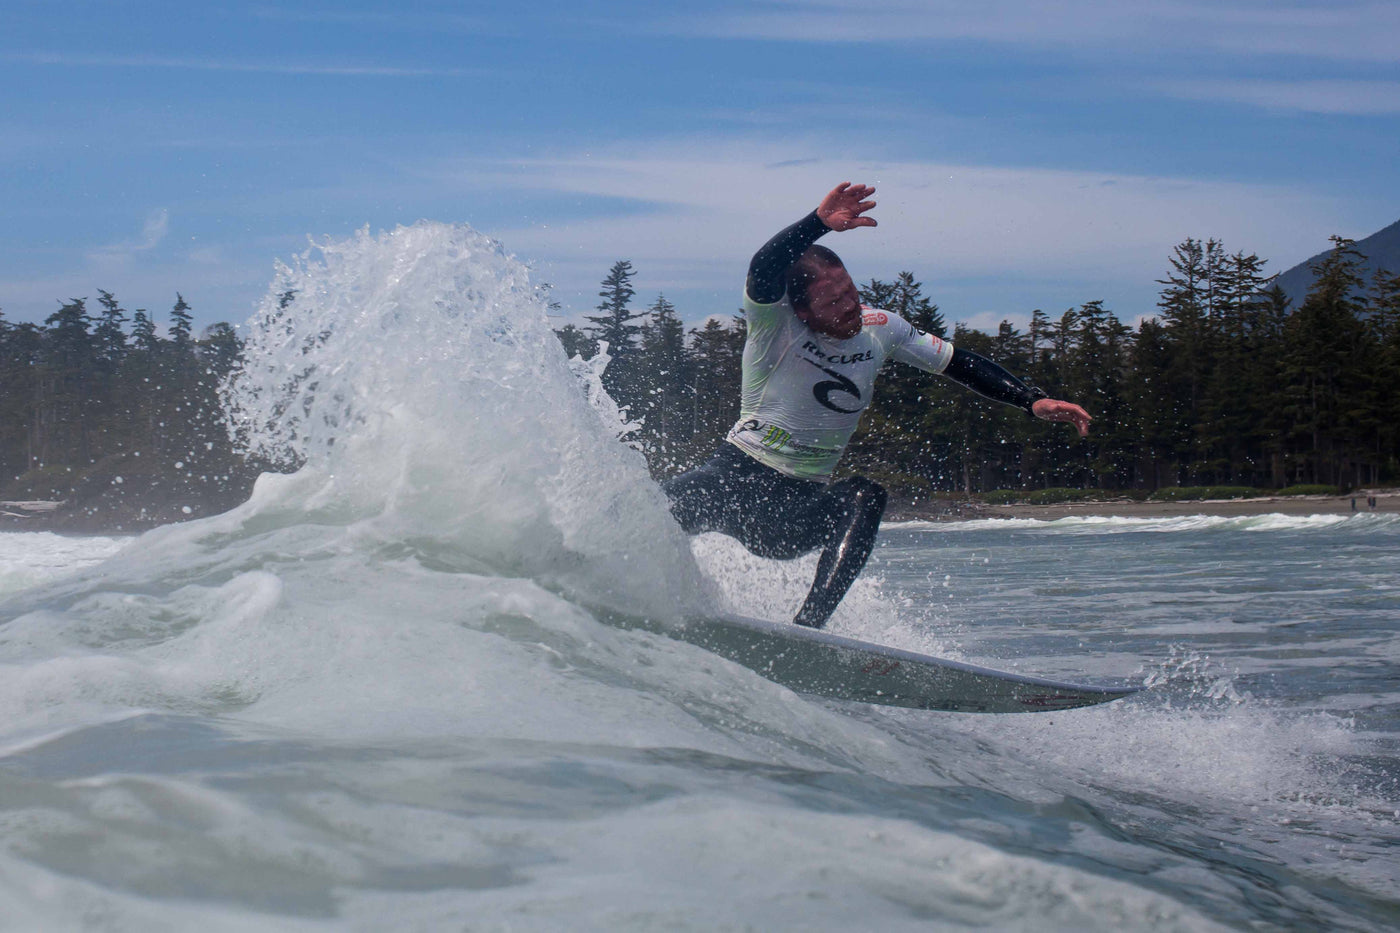 Trans-Canada Surf at the Rip Curl Tofino Pro